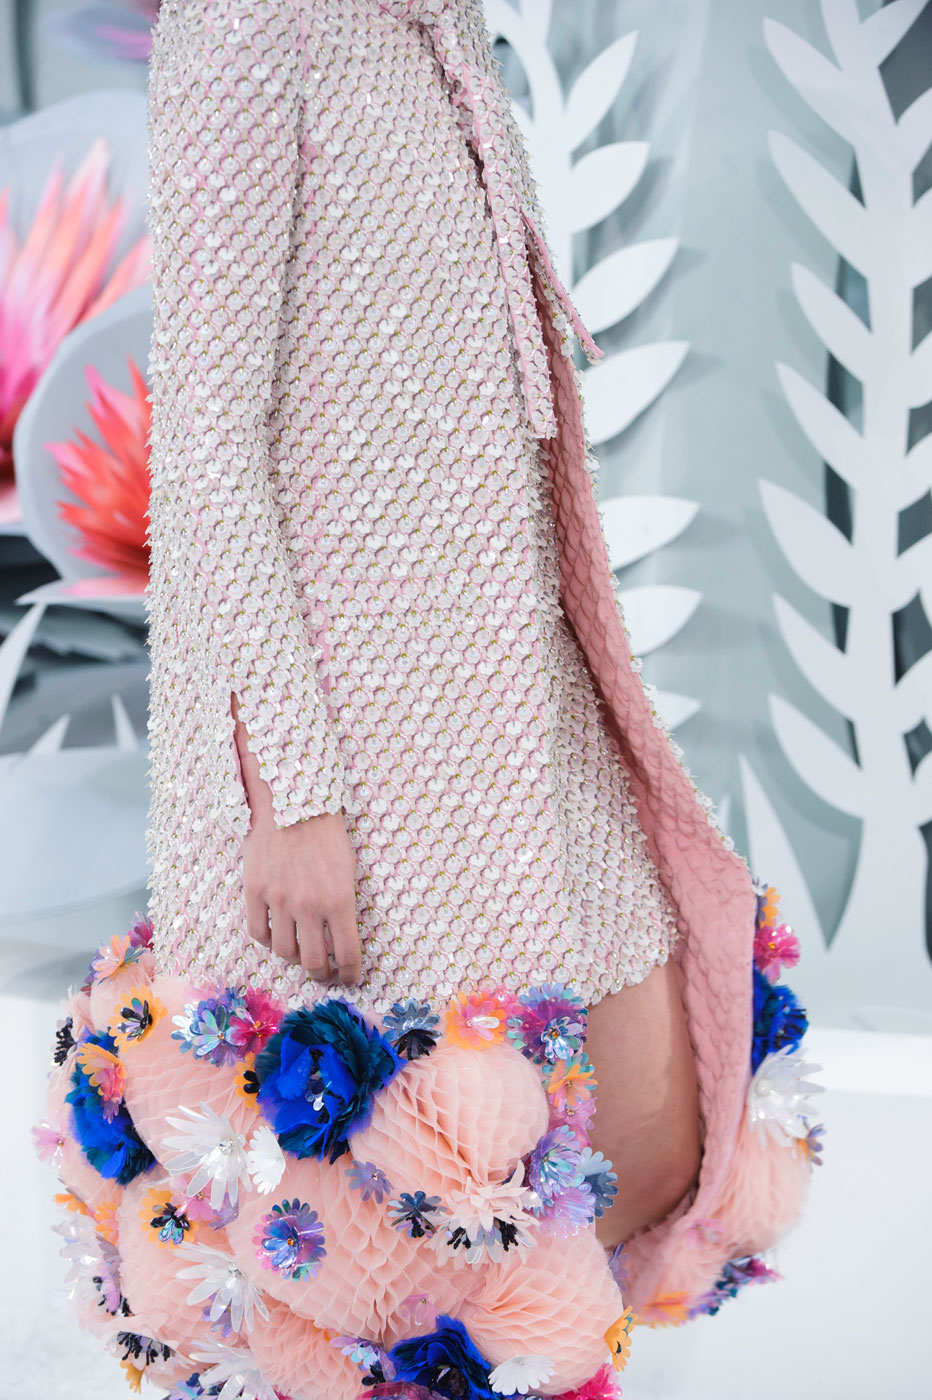 Chanel-fashion-runway-show-close-ups-haute-couture-paris-spring-summer-2015-the-impression-098